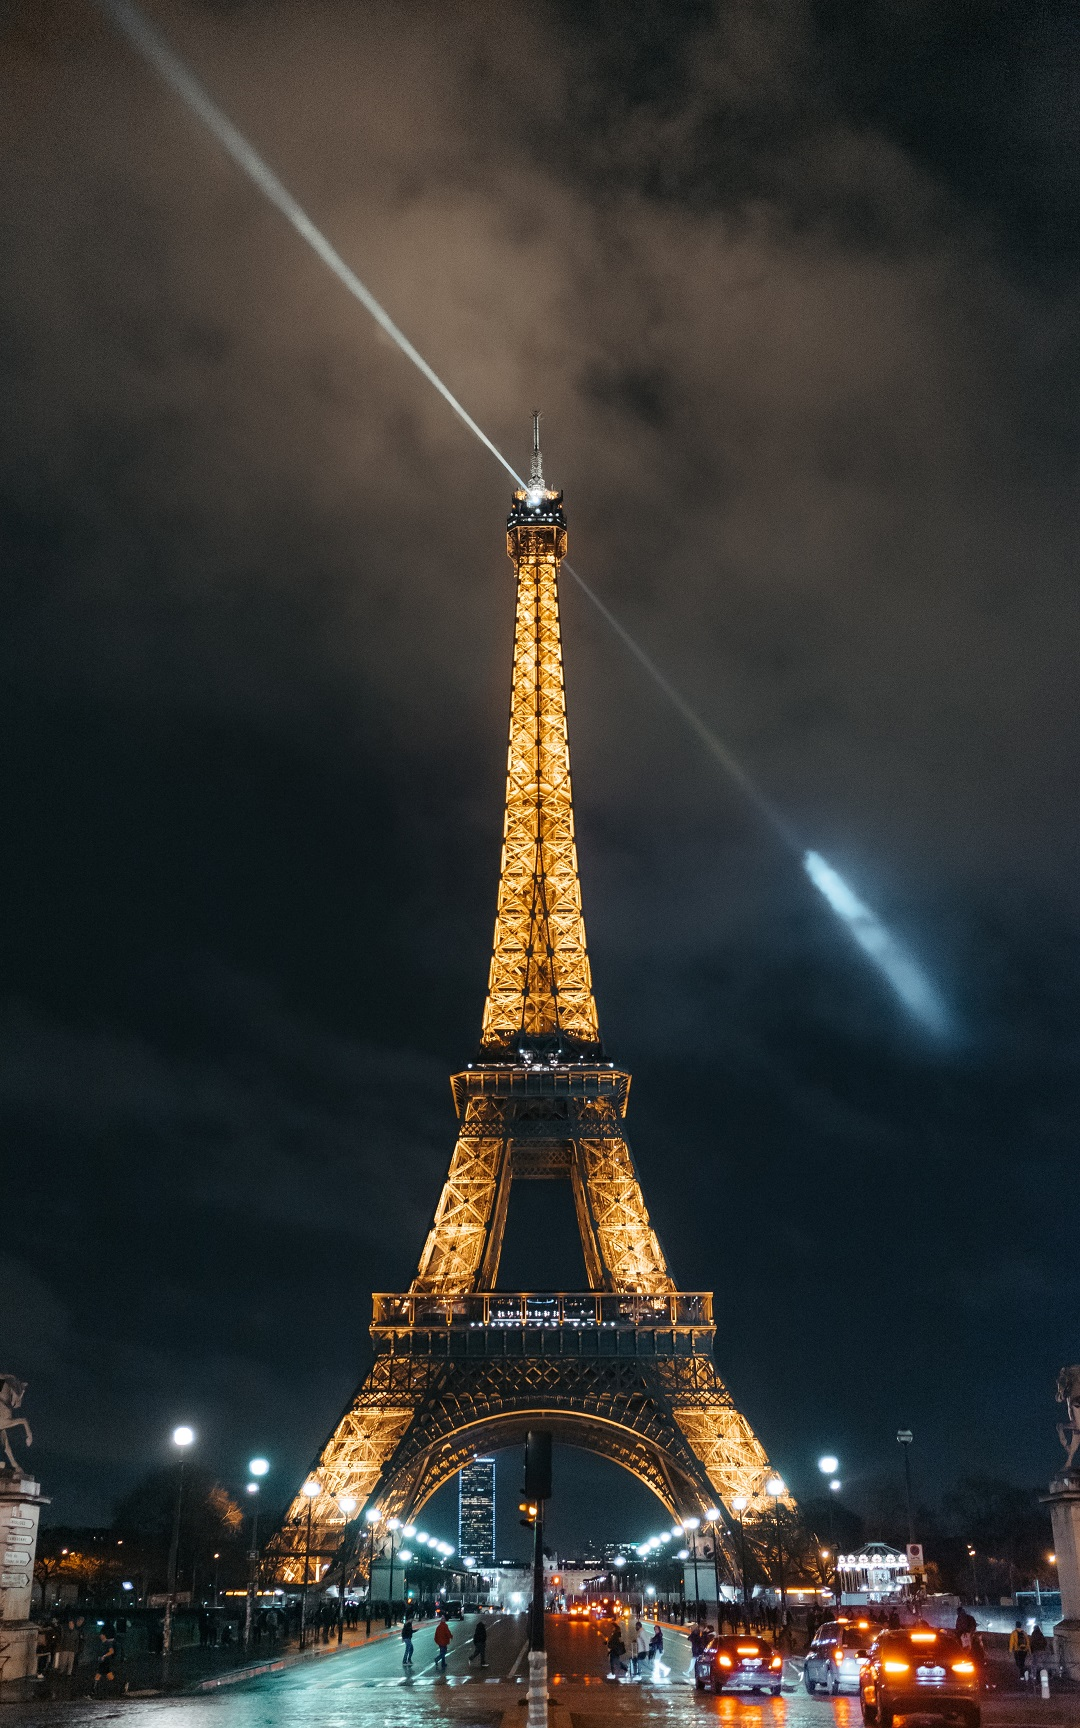 Eiffel tower during night